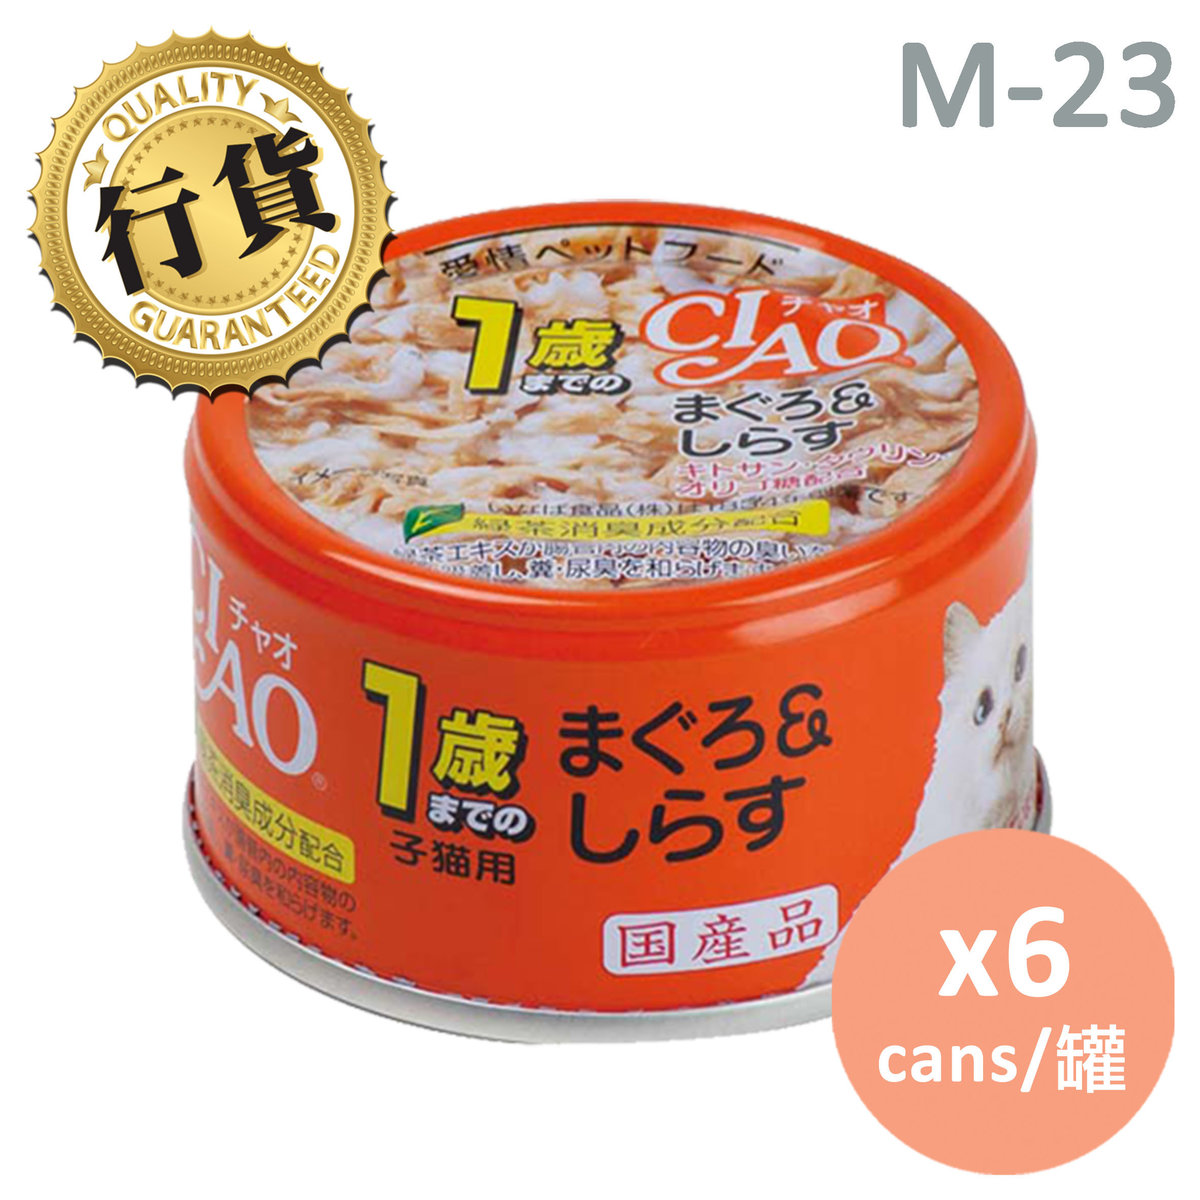 CIAO Kitten 1yr Maguro Young Sardines(Kitten) M-23  x6